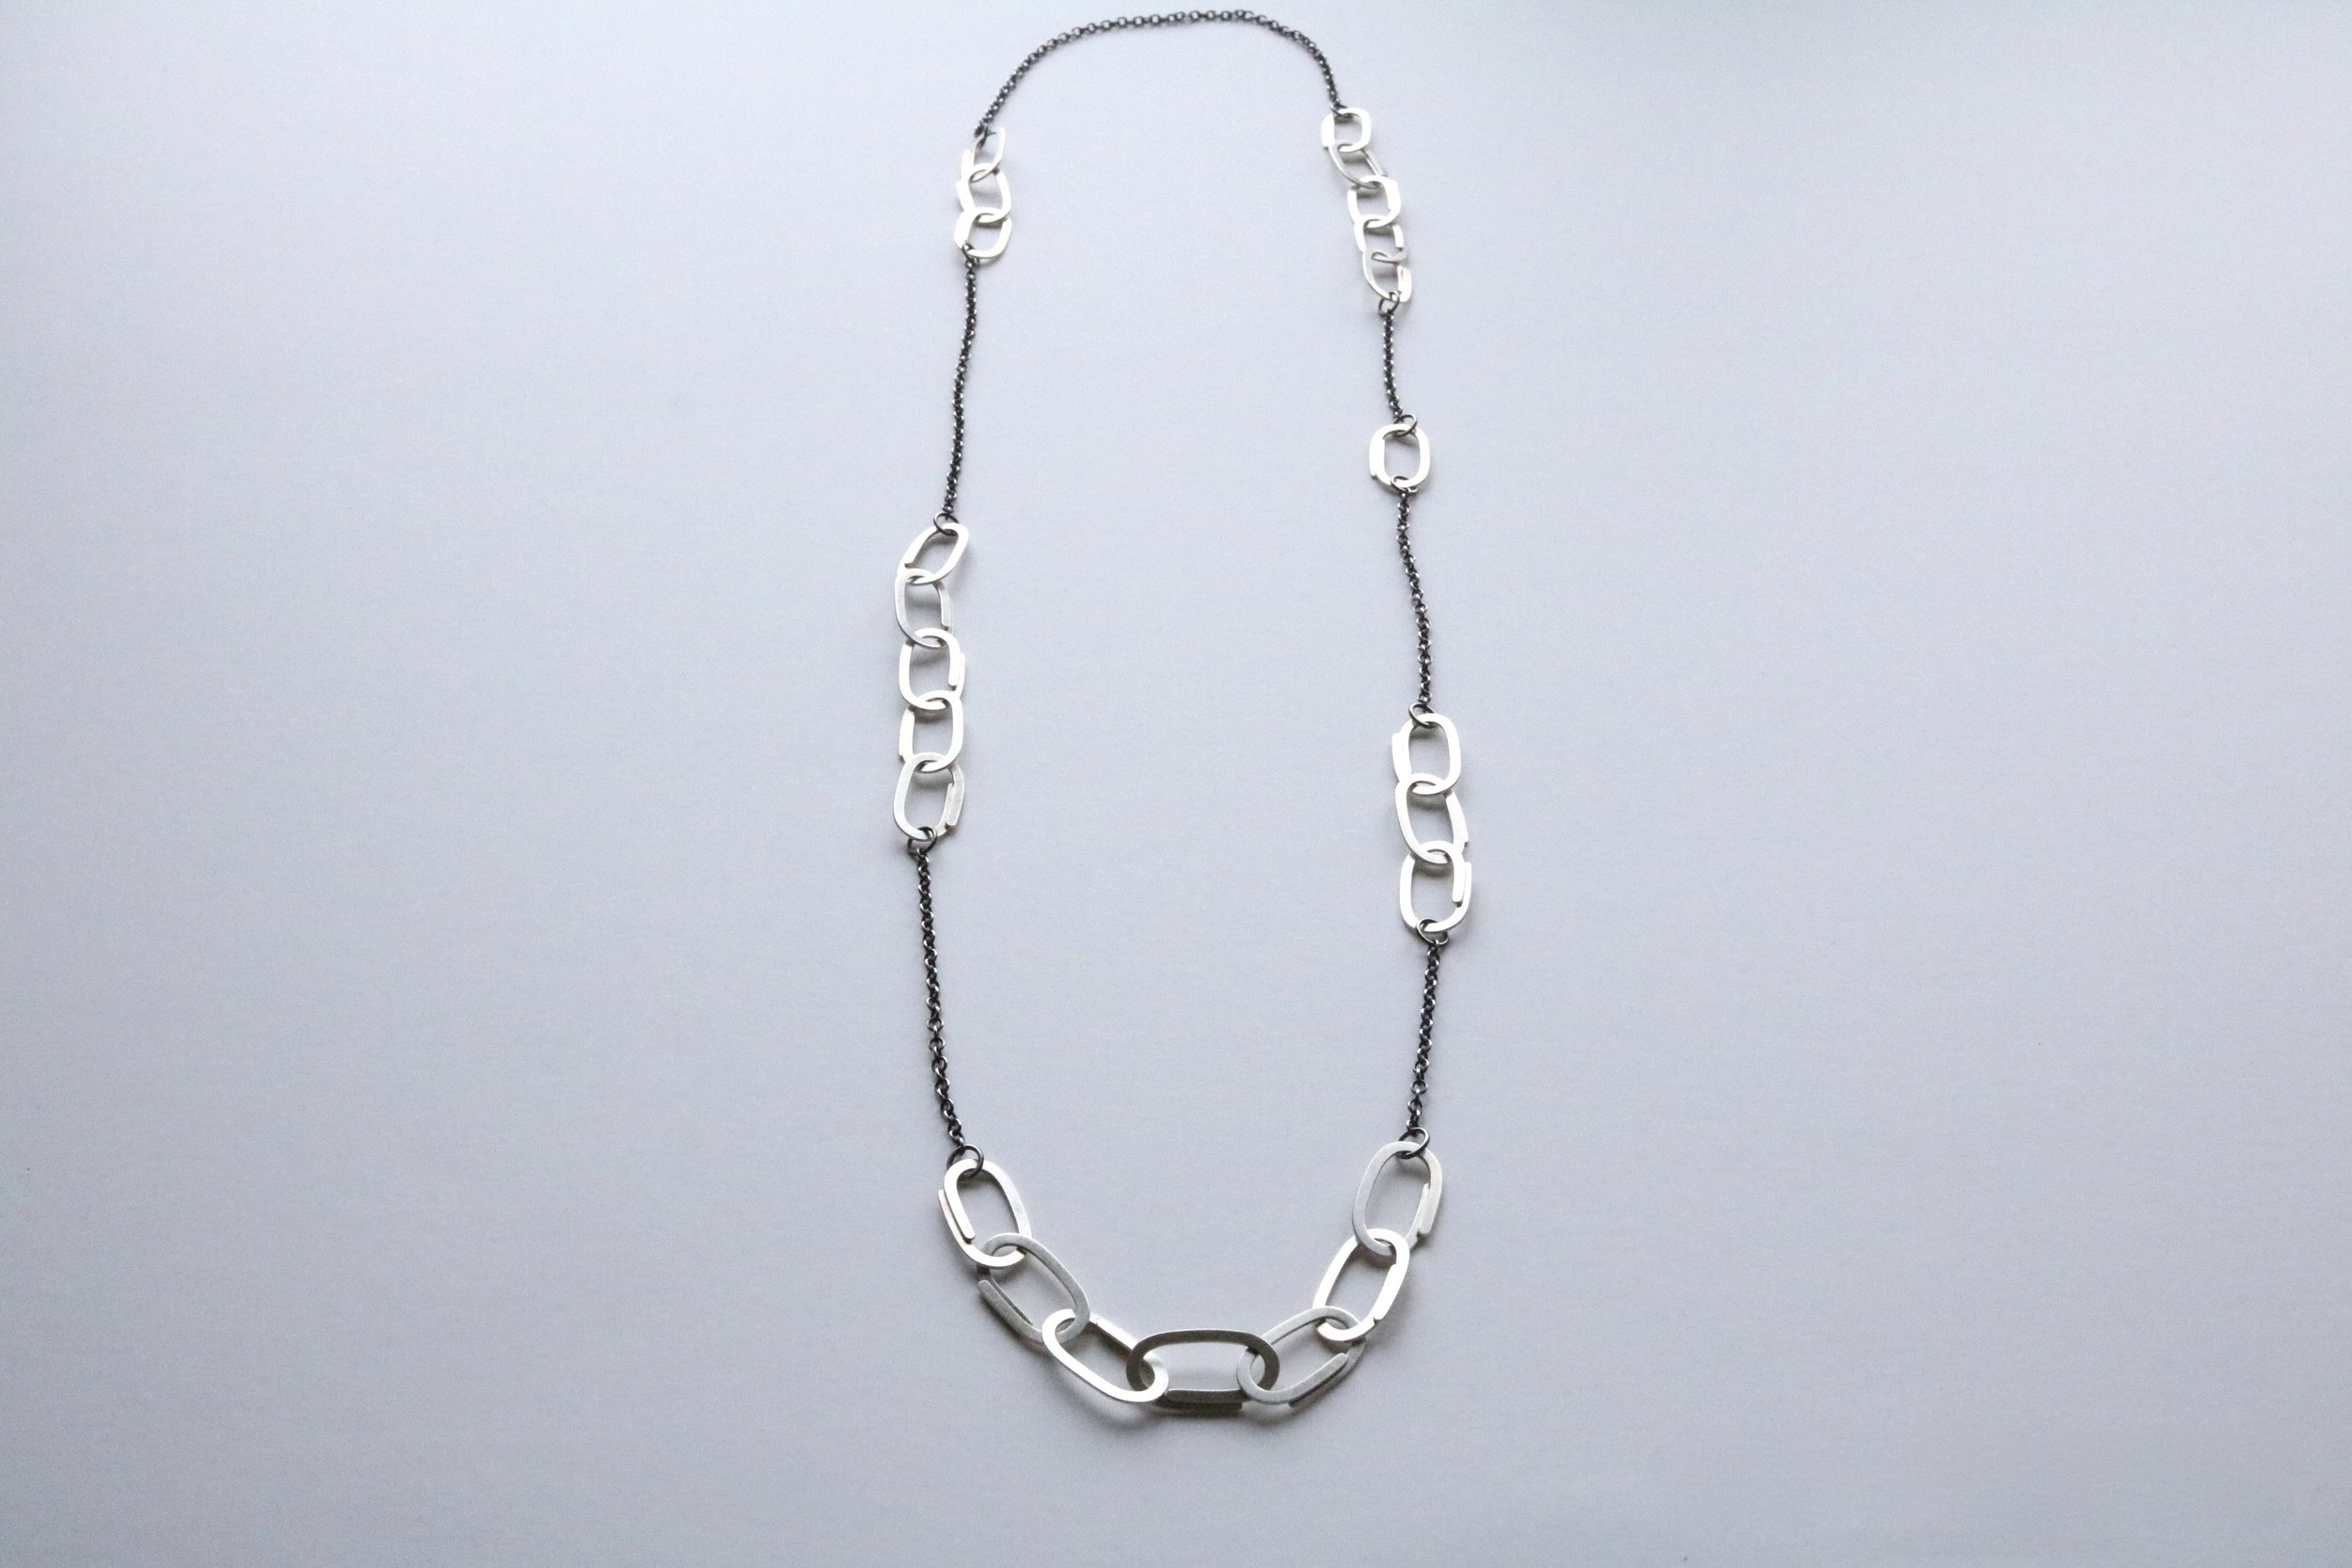 Silver interval clip link necklace, oxidized sterling silver, $320